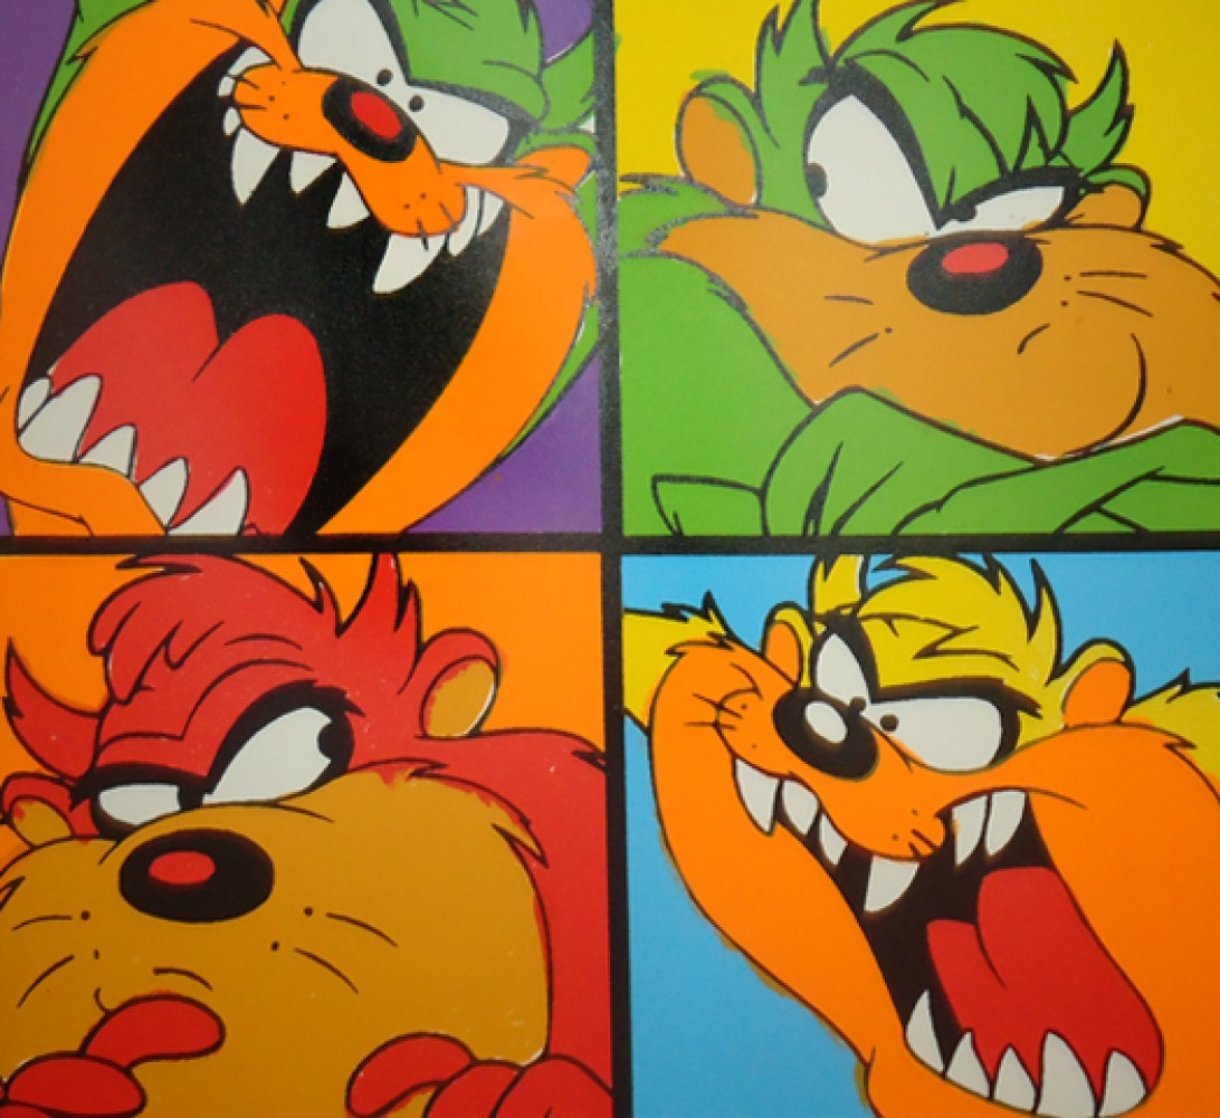 Taz With Attitude PP Limited Edition Print by Steve Kaufman